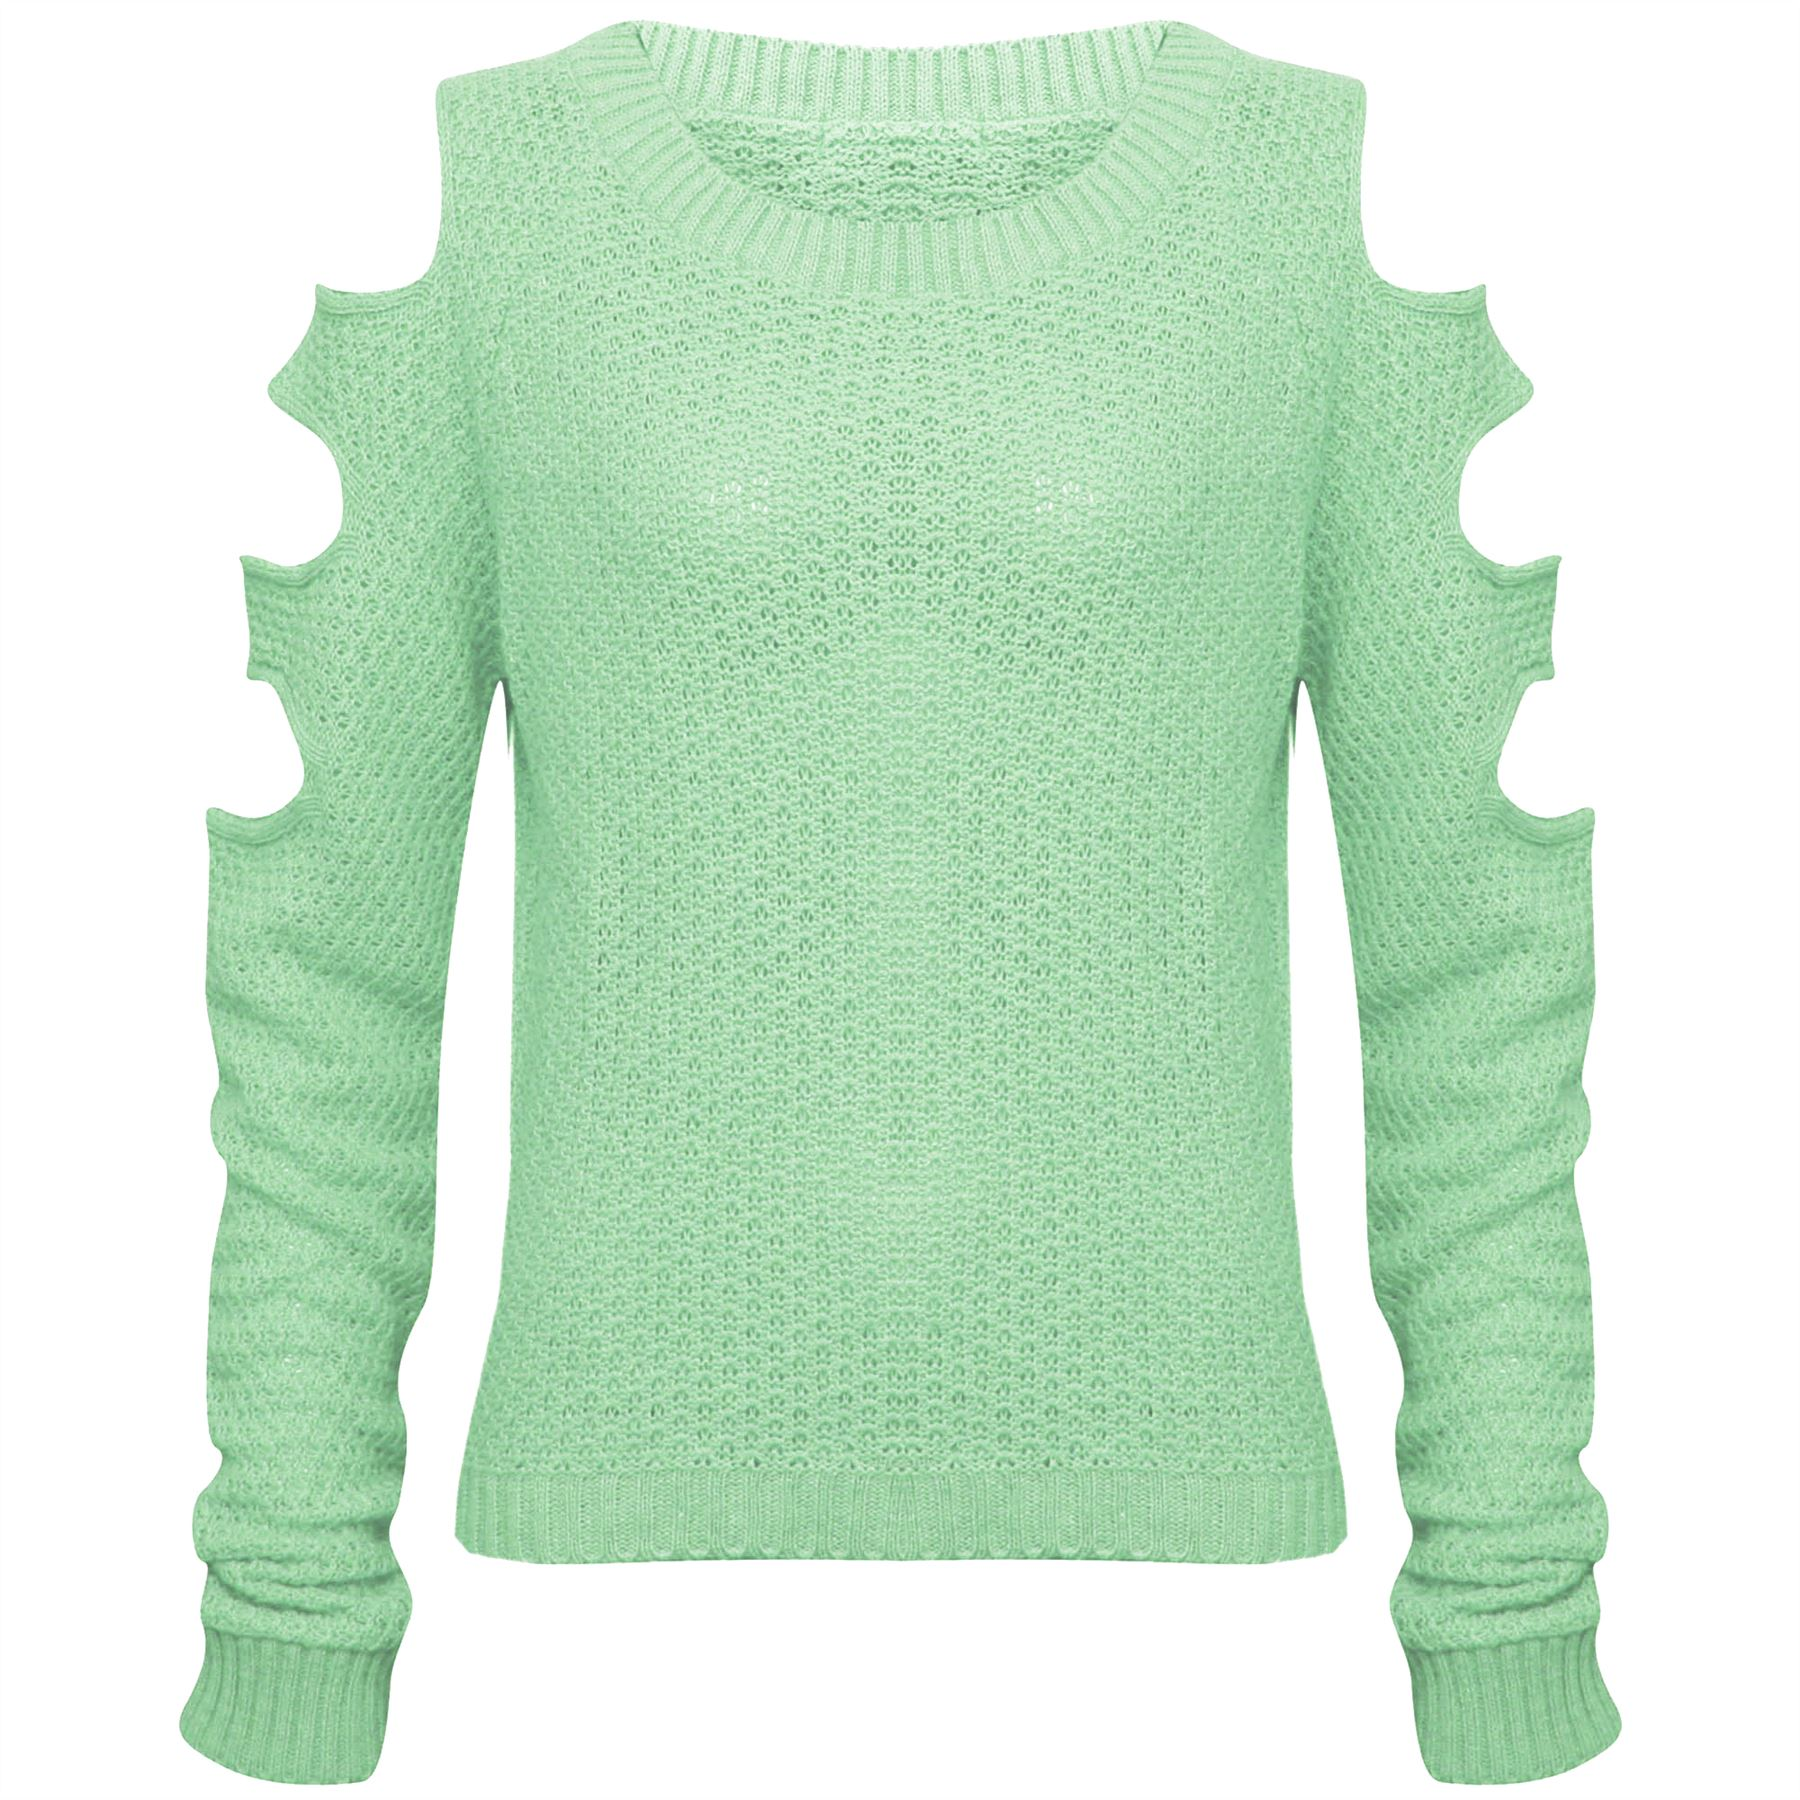 Womens Ladies Cut Out Arms Long Sleeve Baggy Sweater Knitwear ...